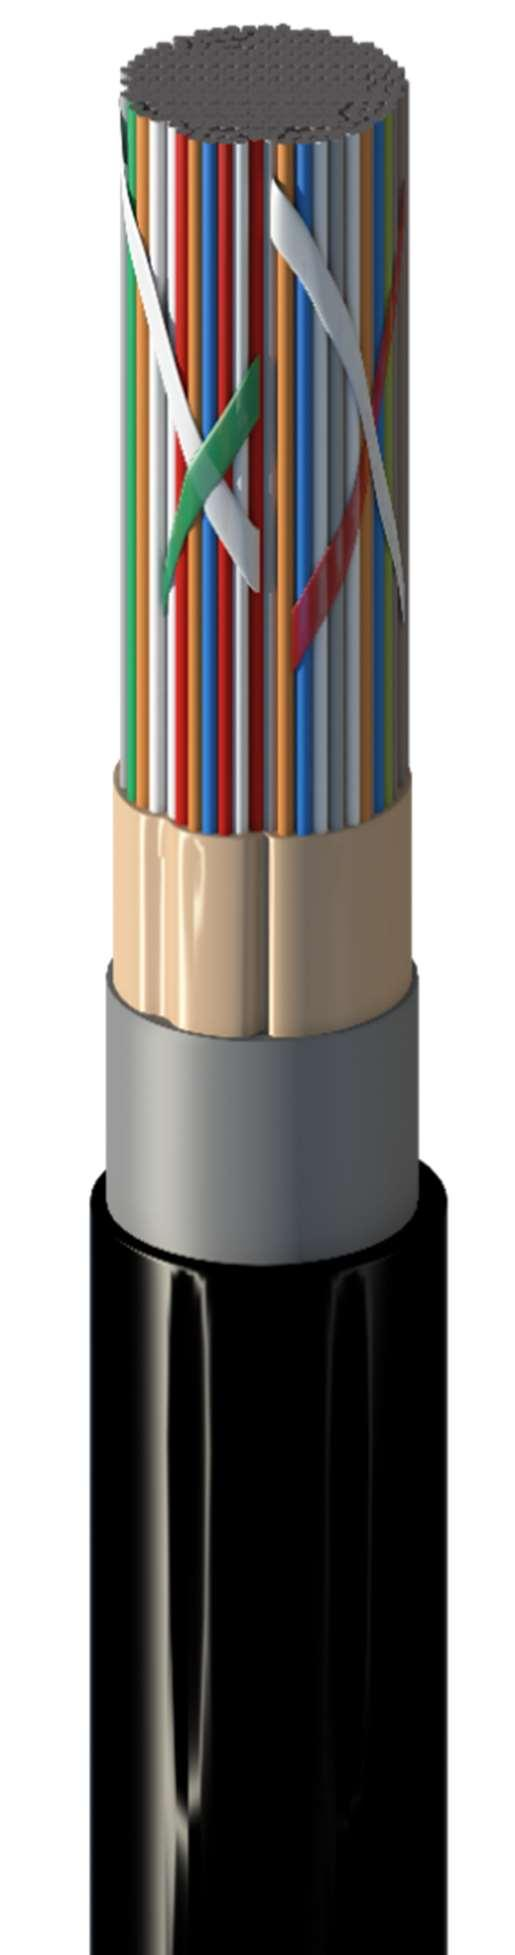 Alcobre Recommends That All Cables Listed In This Catalog Are White Sheathed Old Colours Red Black 6mm Twin Earth Wiring Cable Telecom Pair To External Telephone Networks Te1he Qretm32